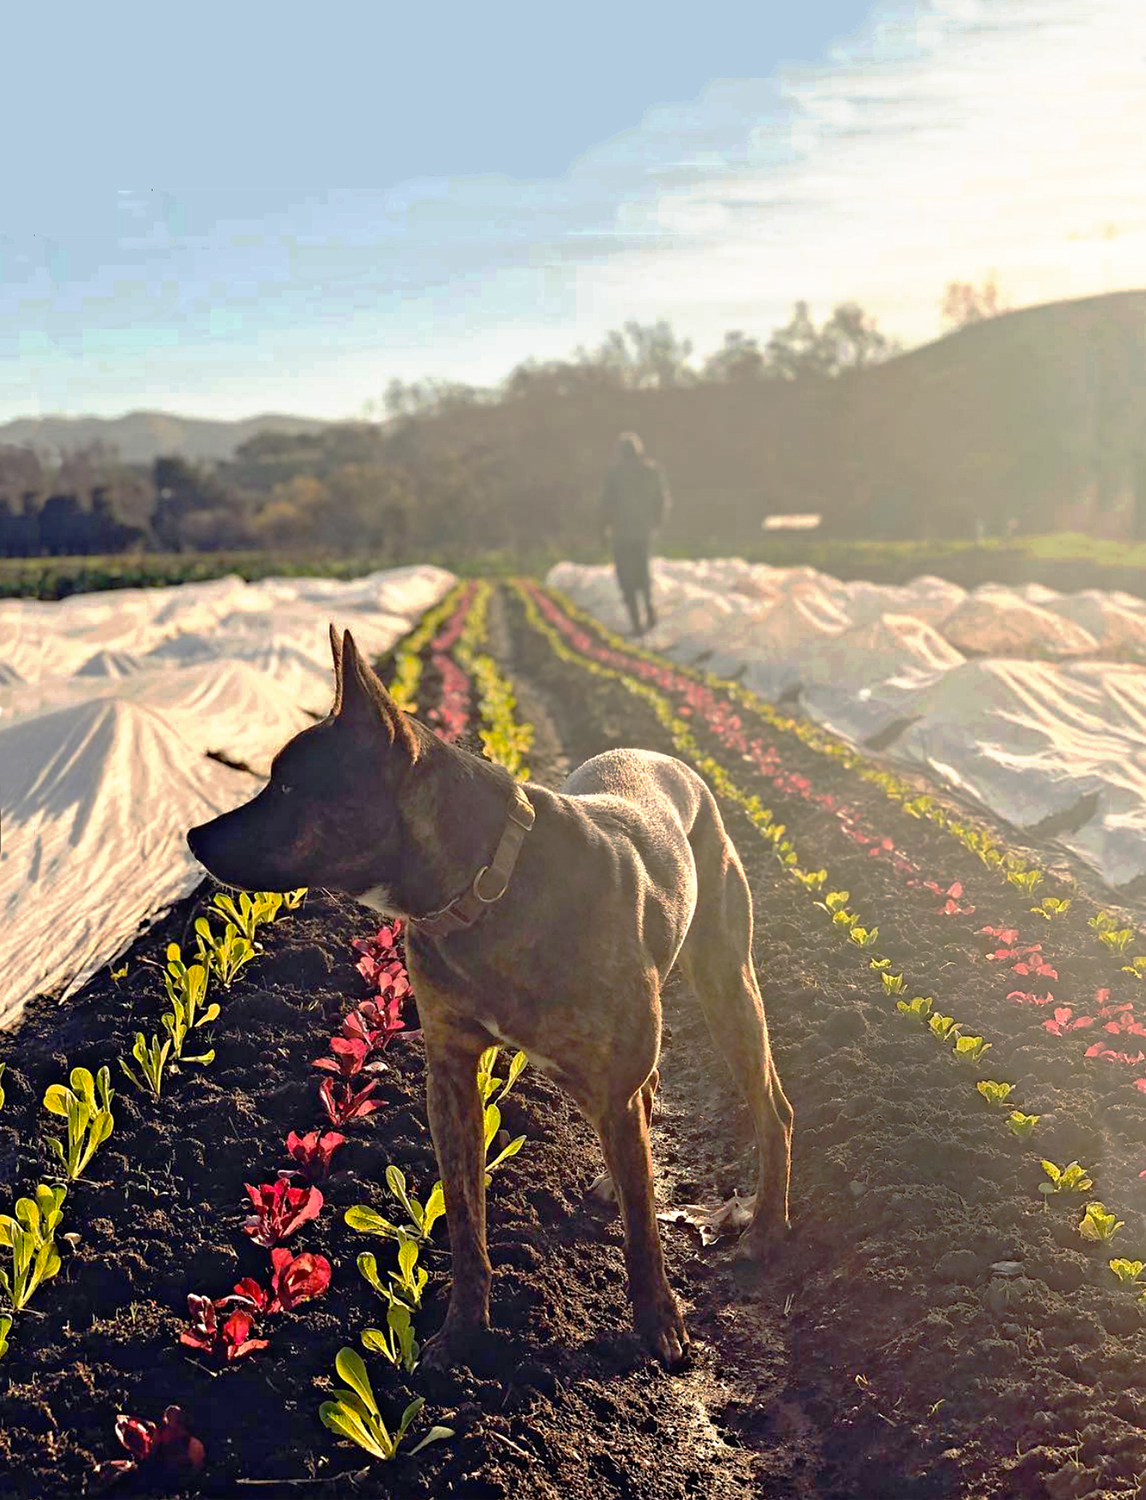 Roux guards the baby lettuces.